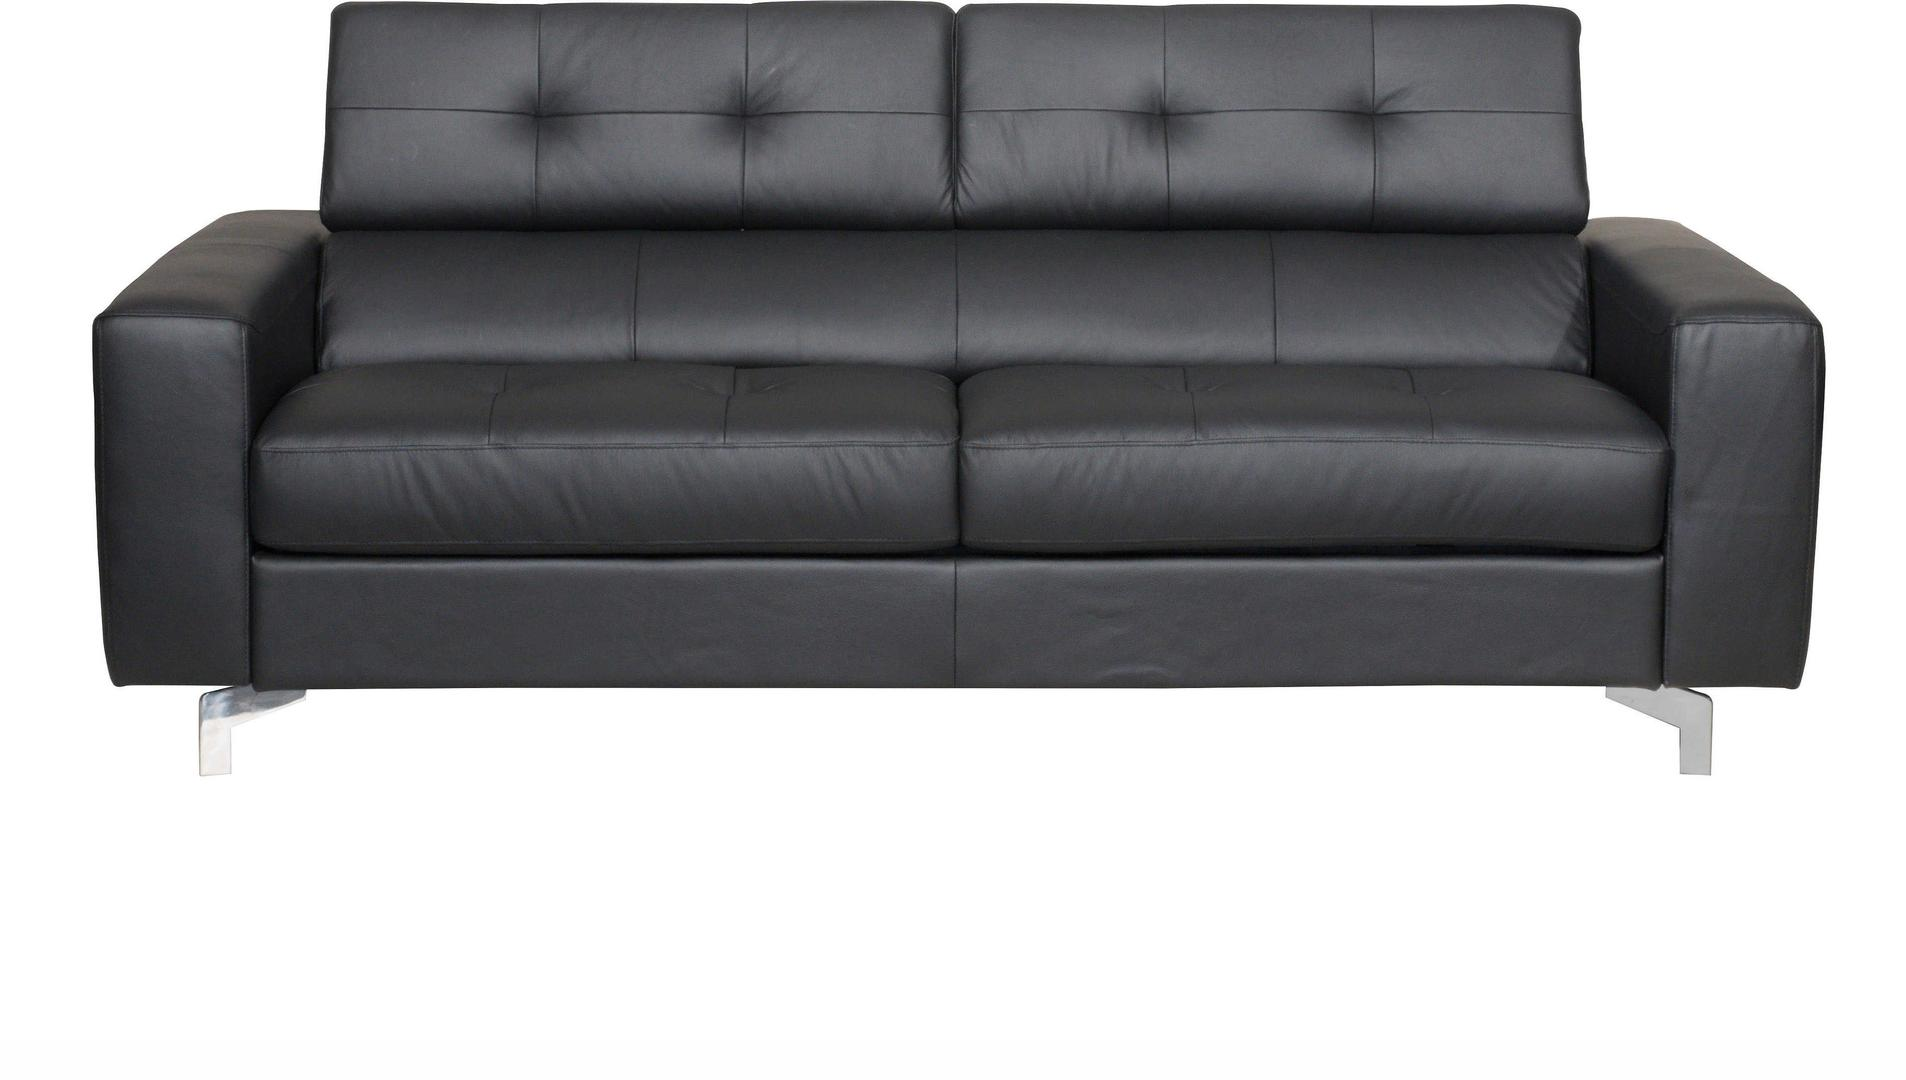 Cool Acme Tevere Sofa With Sleeper In Black Leather Finish 54228 Dailytribune Chair Design For Home Dailytribuneorg